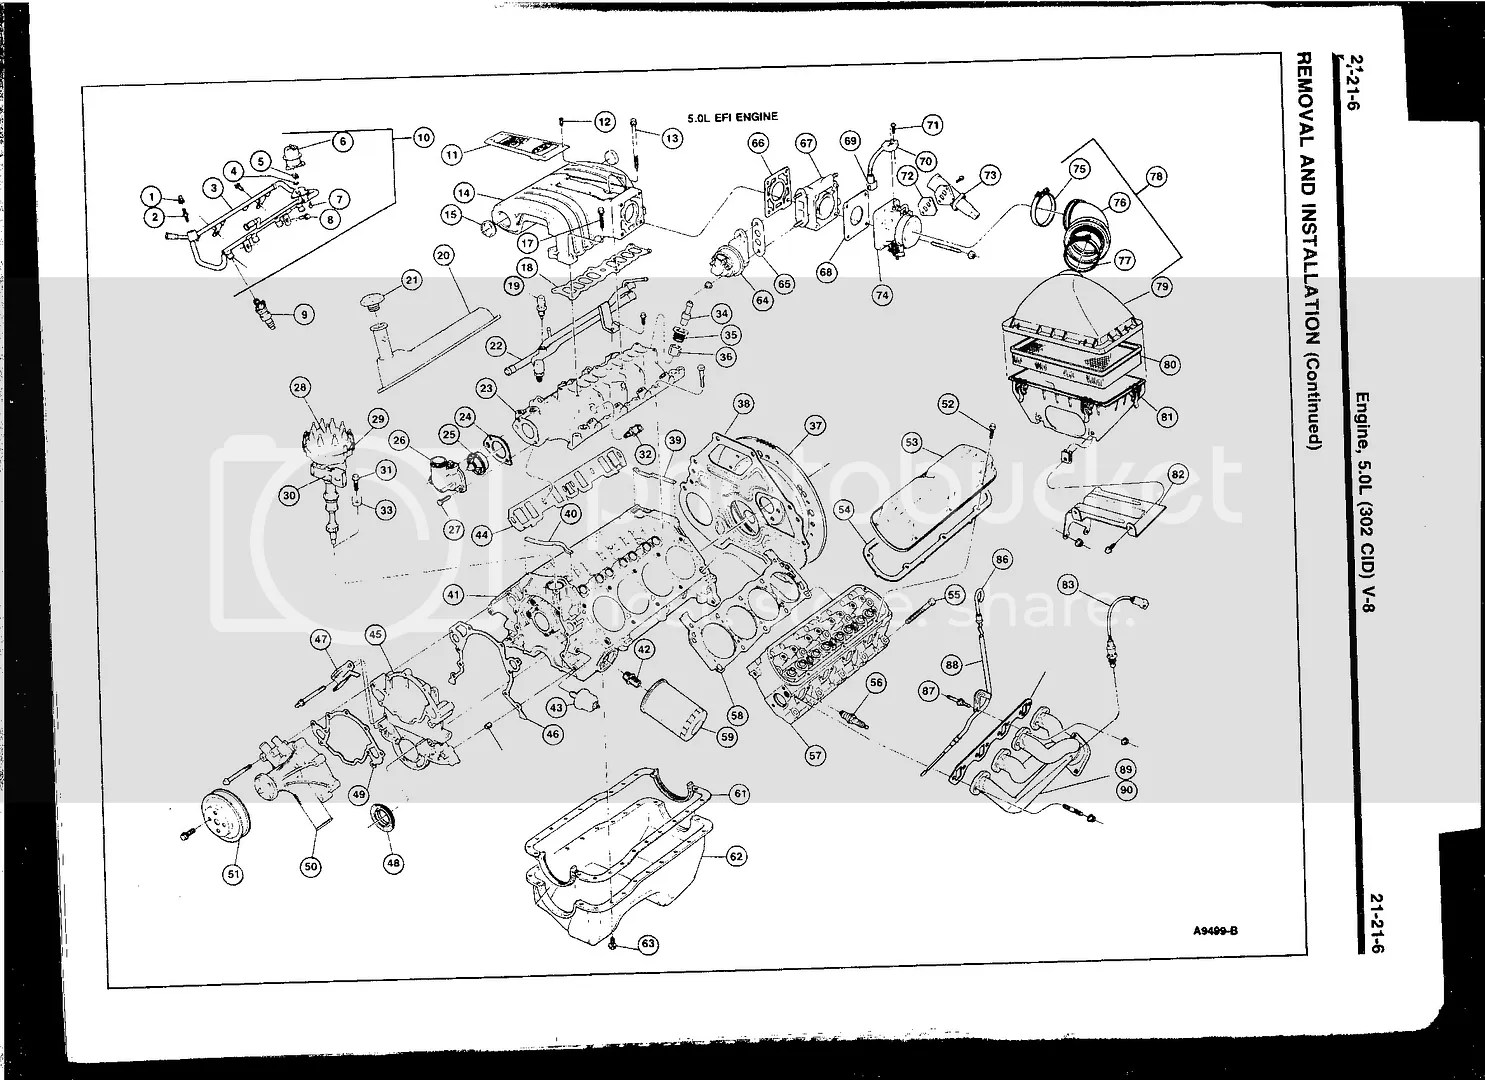 Diagram Or Picture Of 302 Assembly Front Accessories Intake Timing Cover Etc